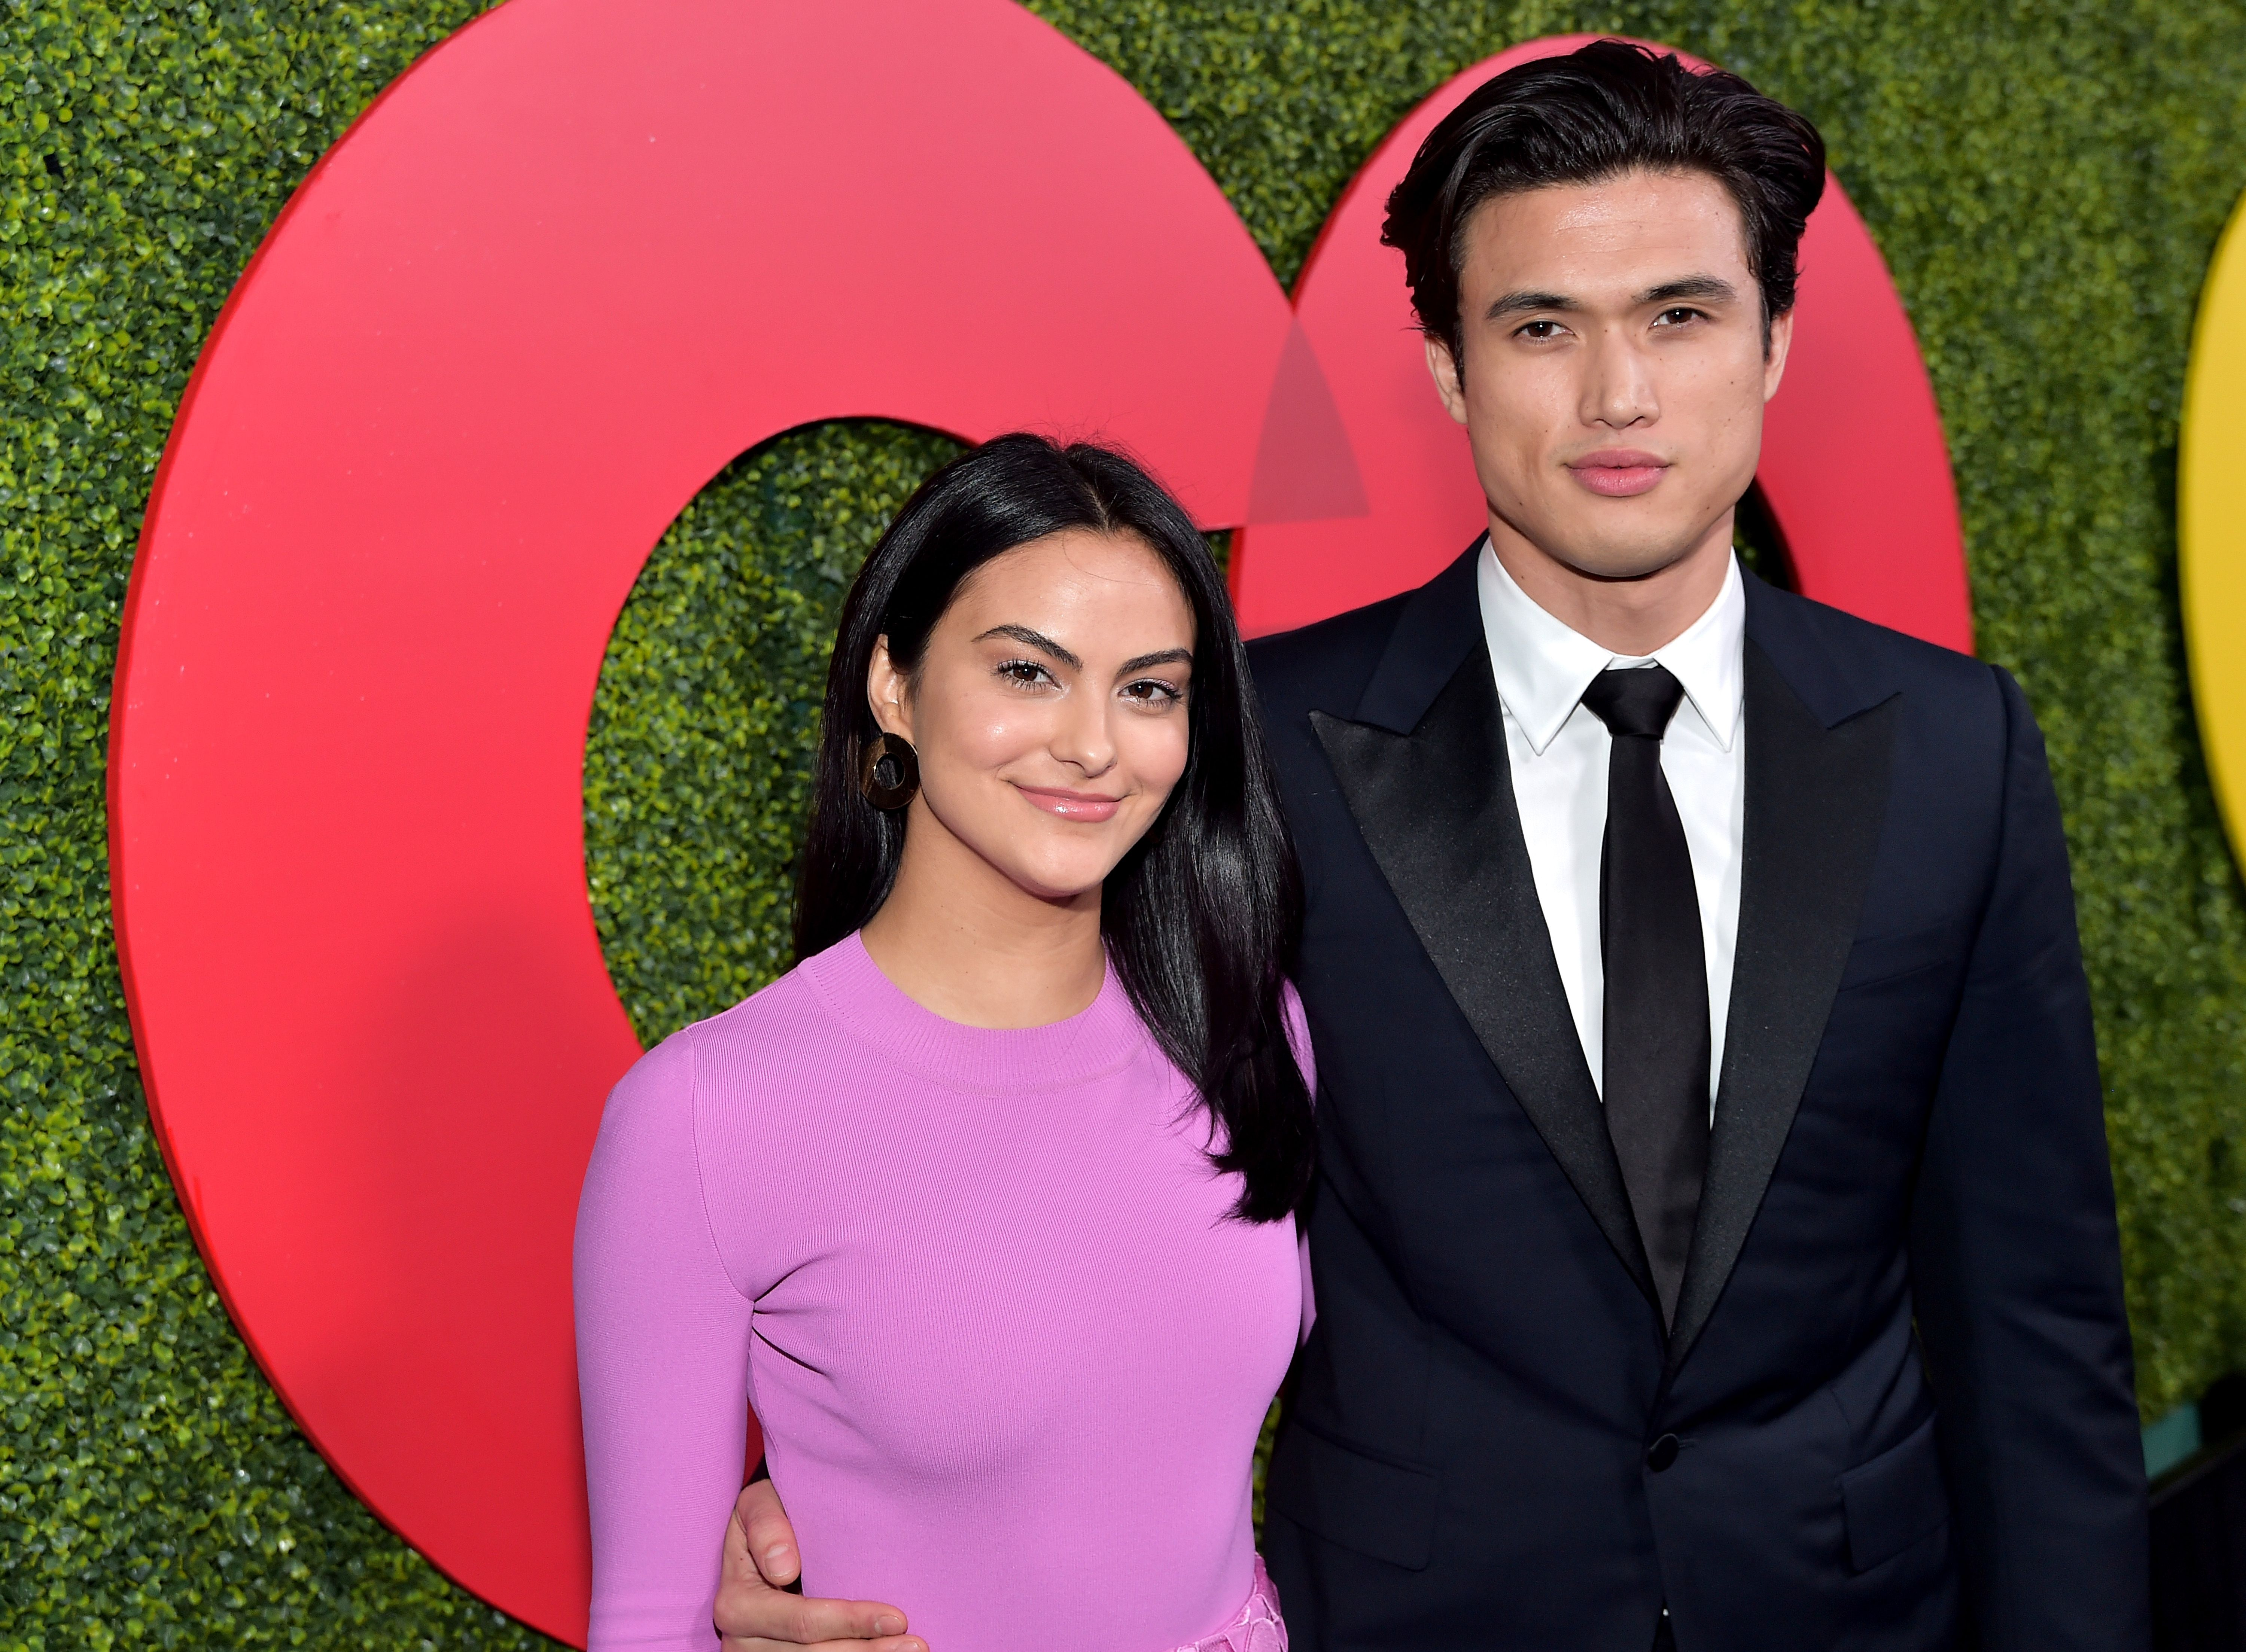 And So is Veggie Okay, Veronica Lodge and Reggie Mantle may not be endgame in the Riverdale world, but in the real world, things are looking really great for the couple who plays them. Camila Mendes and Charles Melton became Instagram-official back in October 2018, and it's been heart eye emojis ever since.